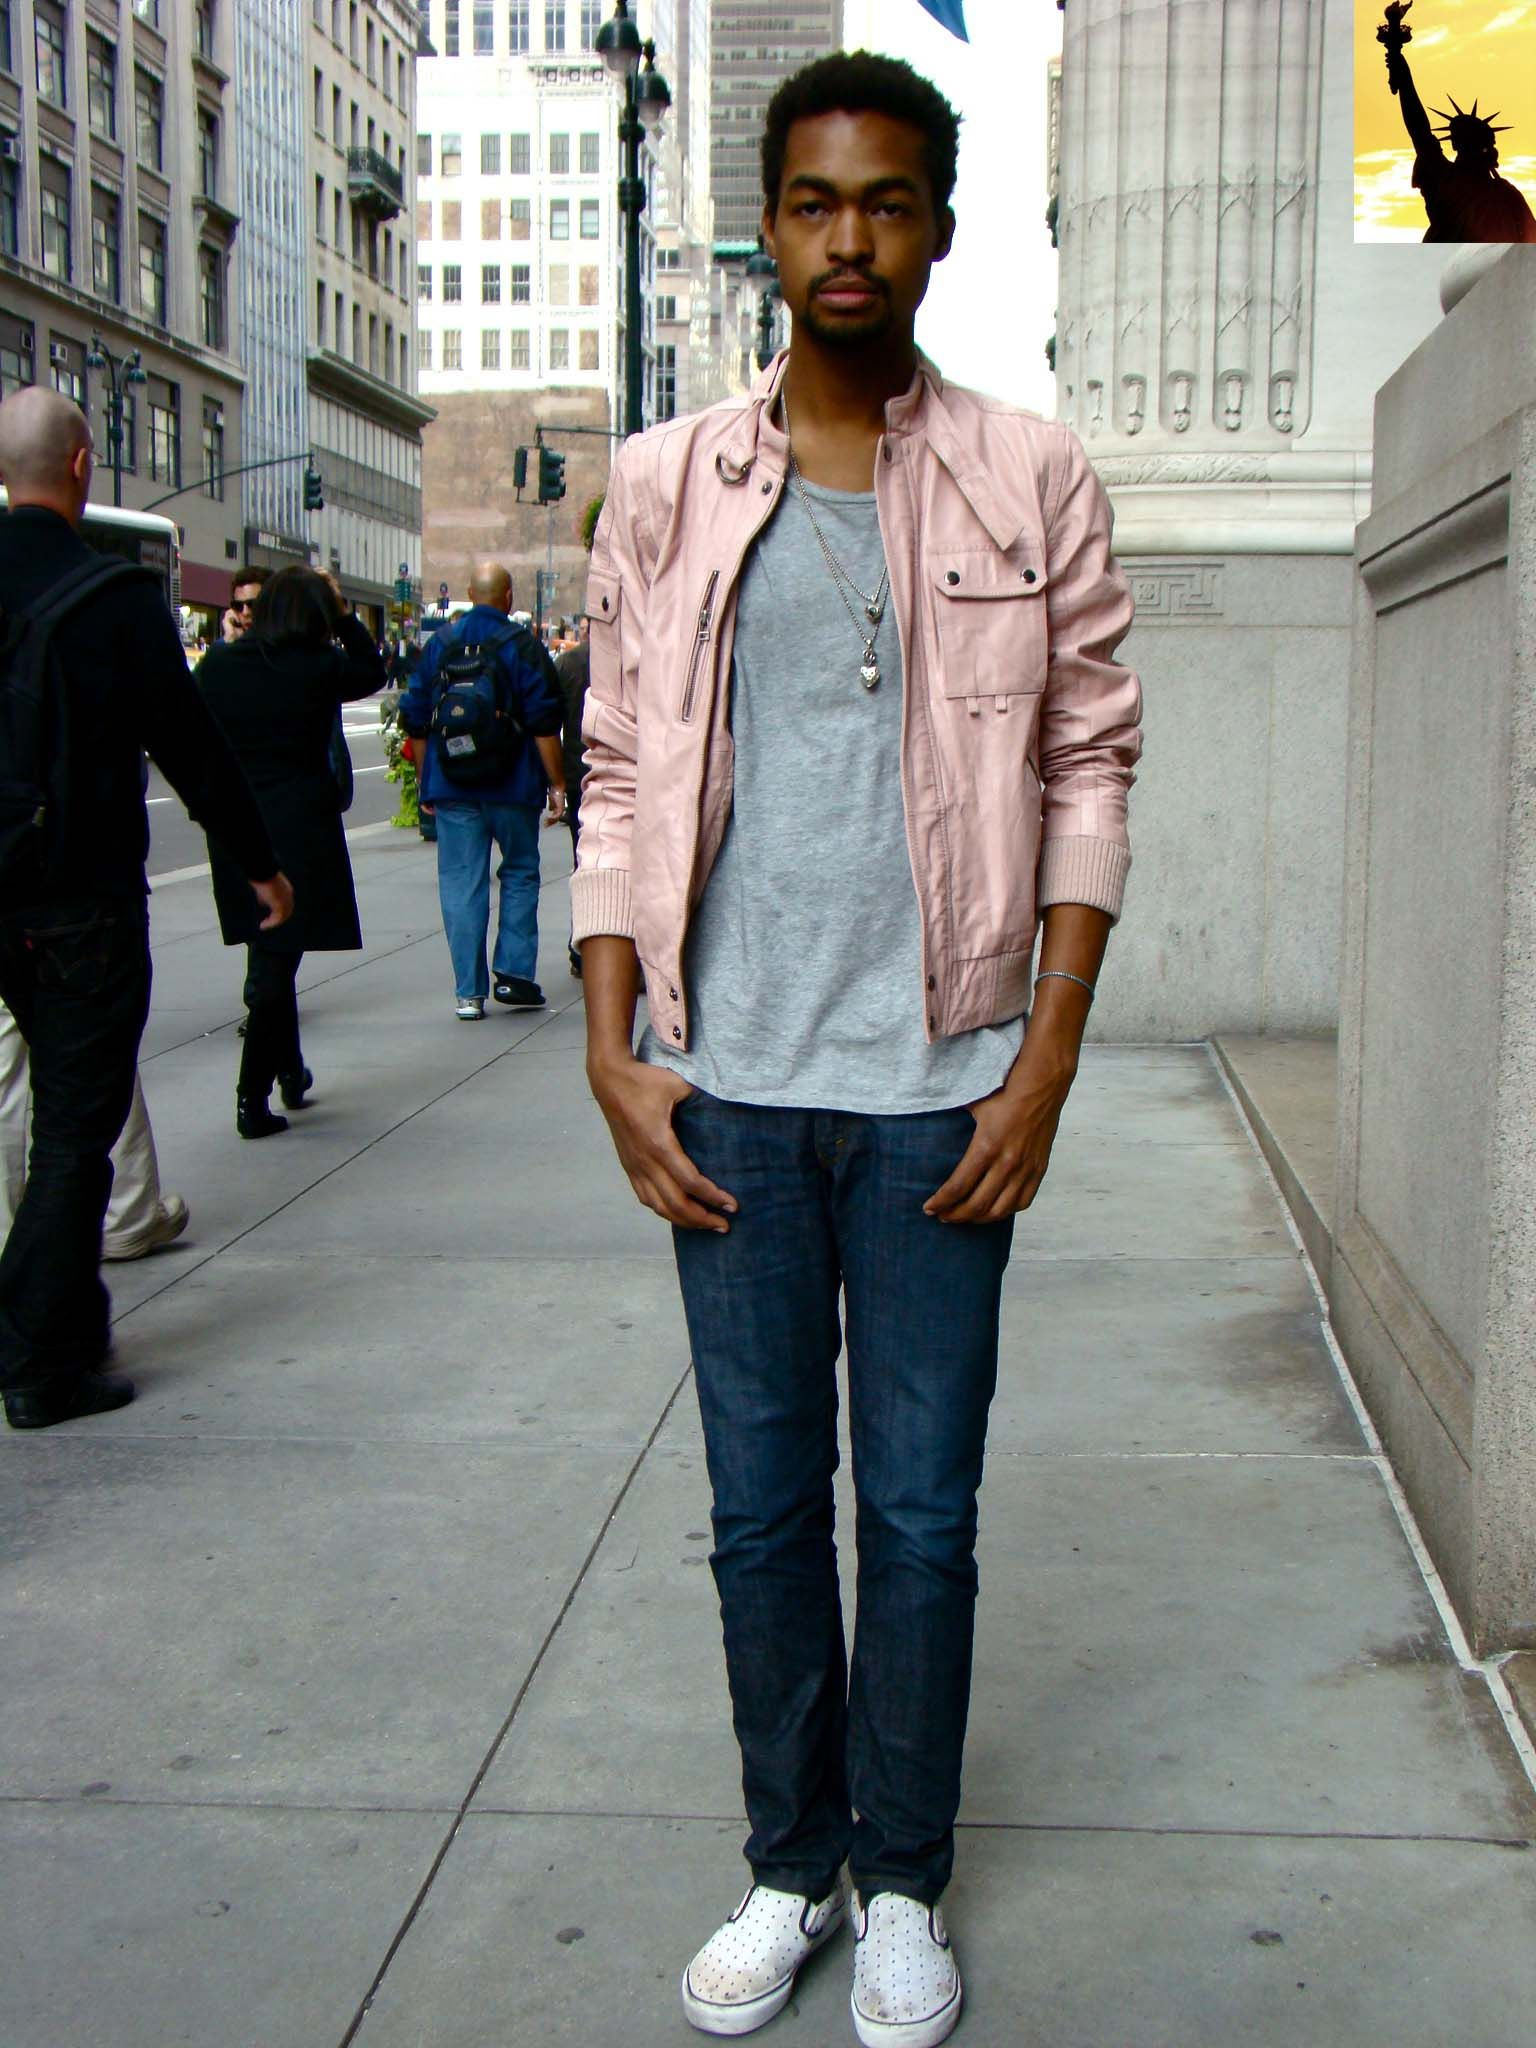 guy-pink-leather-bomber-jacket-jeans-and-grey-shirt.jpg (1536×2048 ...